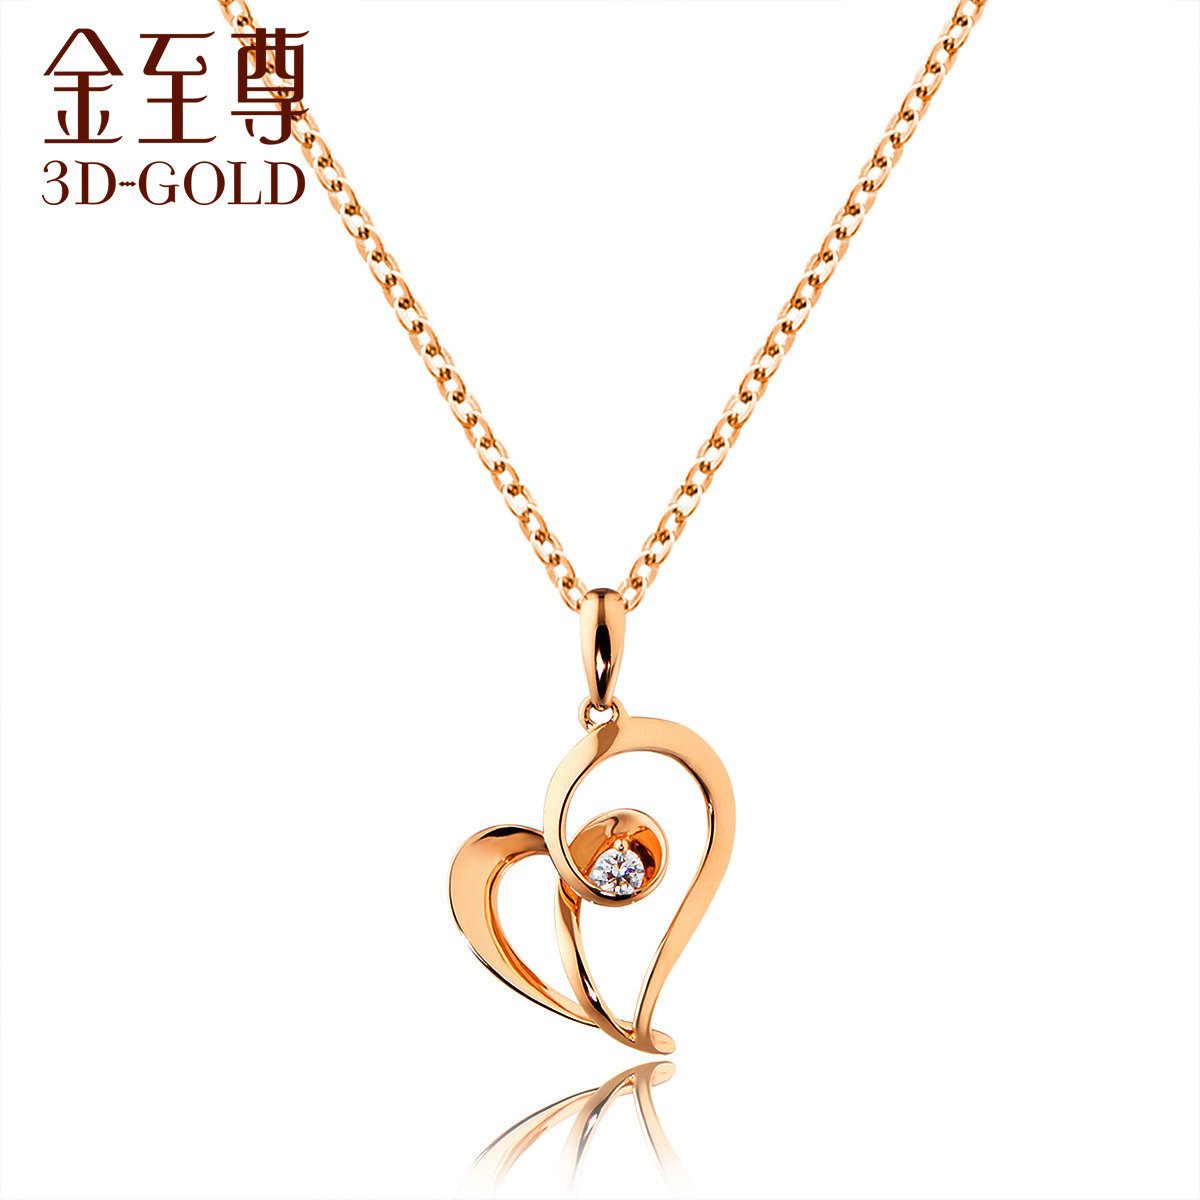 Summer Melody Collection 18K/750 Red Gold Diamond Pendant (Necklace not included)